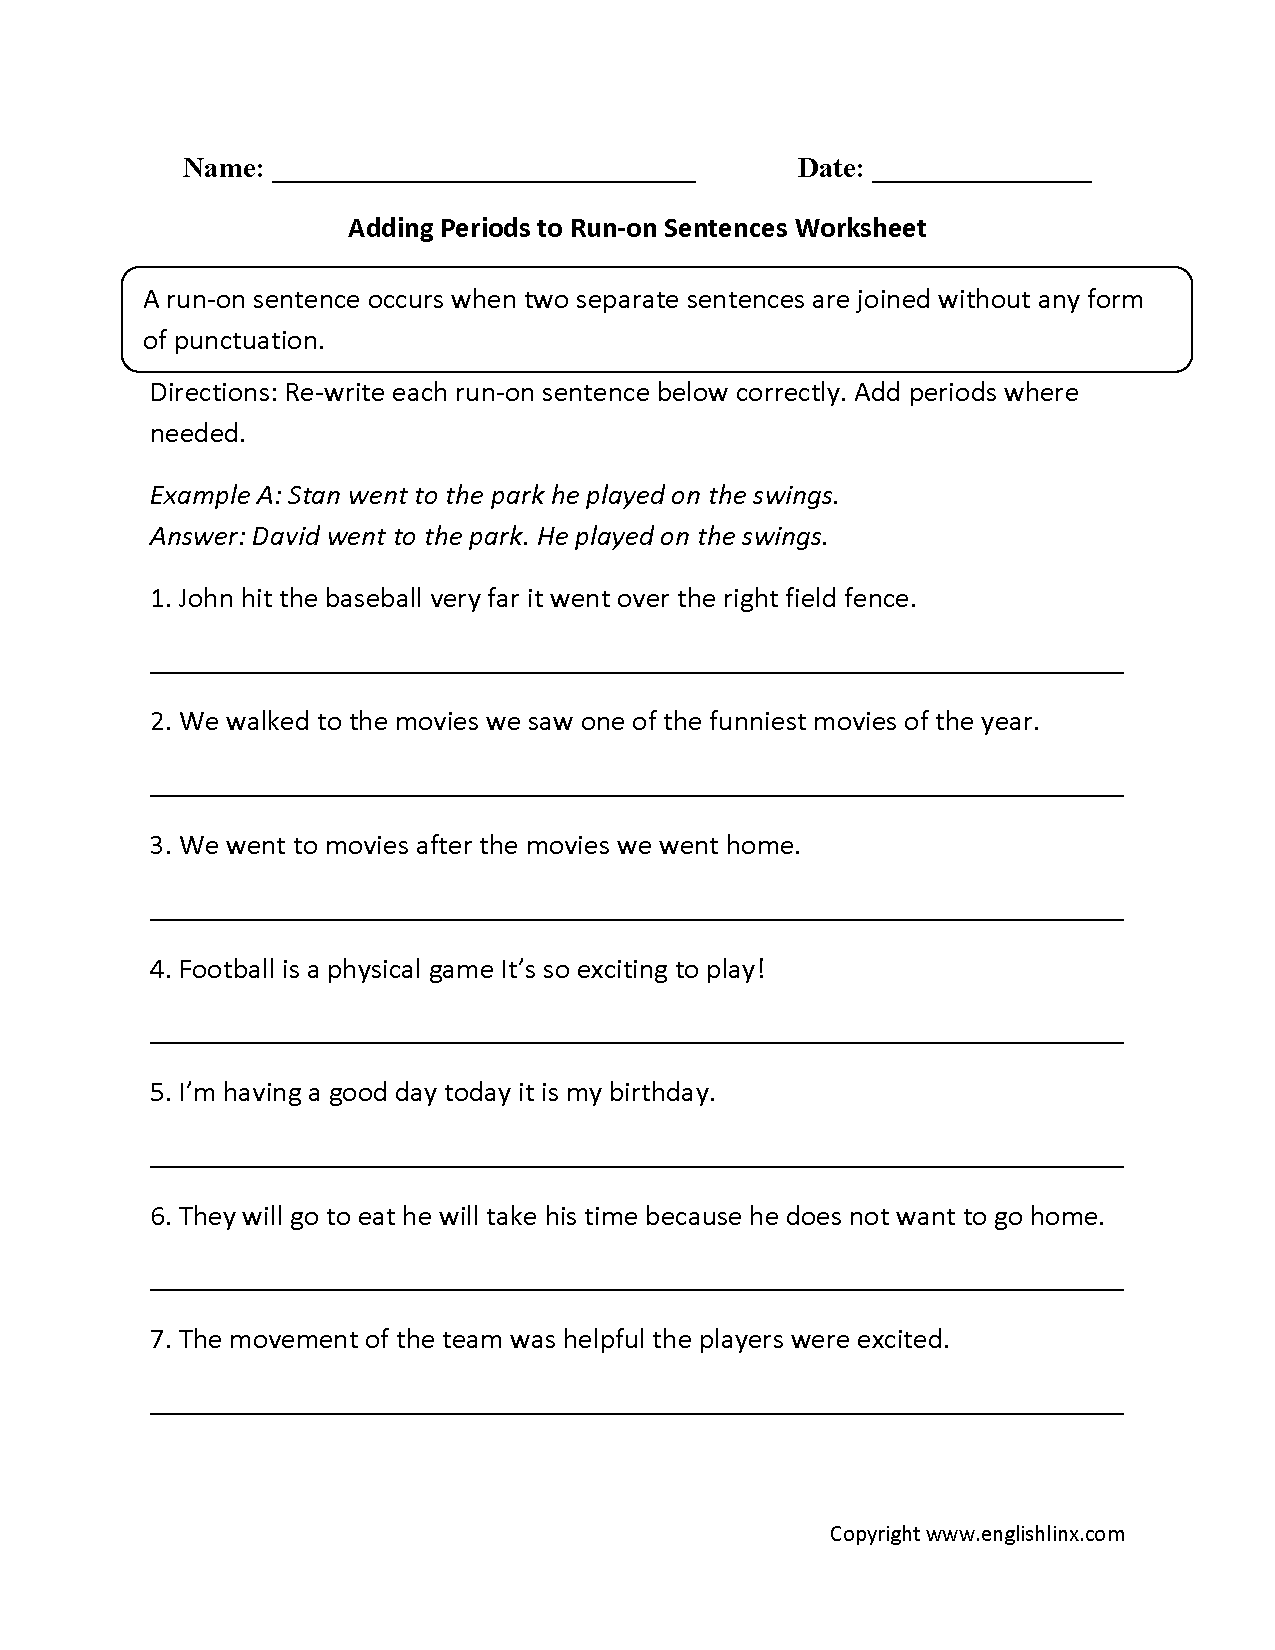 Fragments and Run-on Sentences 6th Grade Worksheet | Lesson Planet